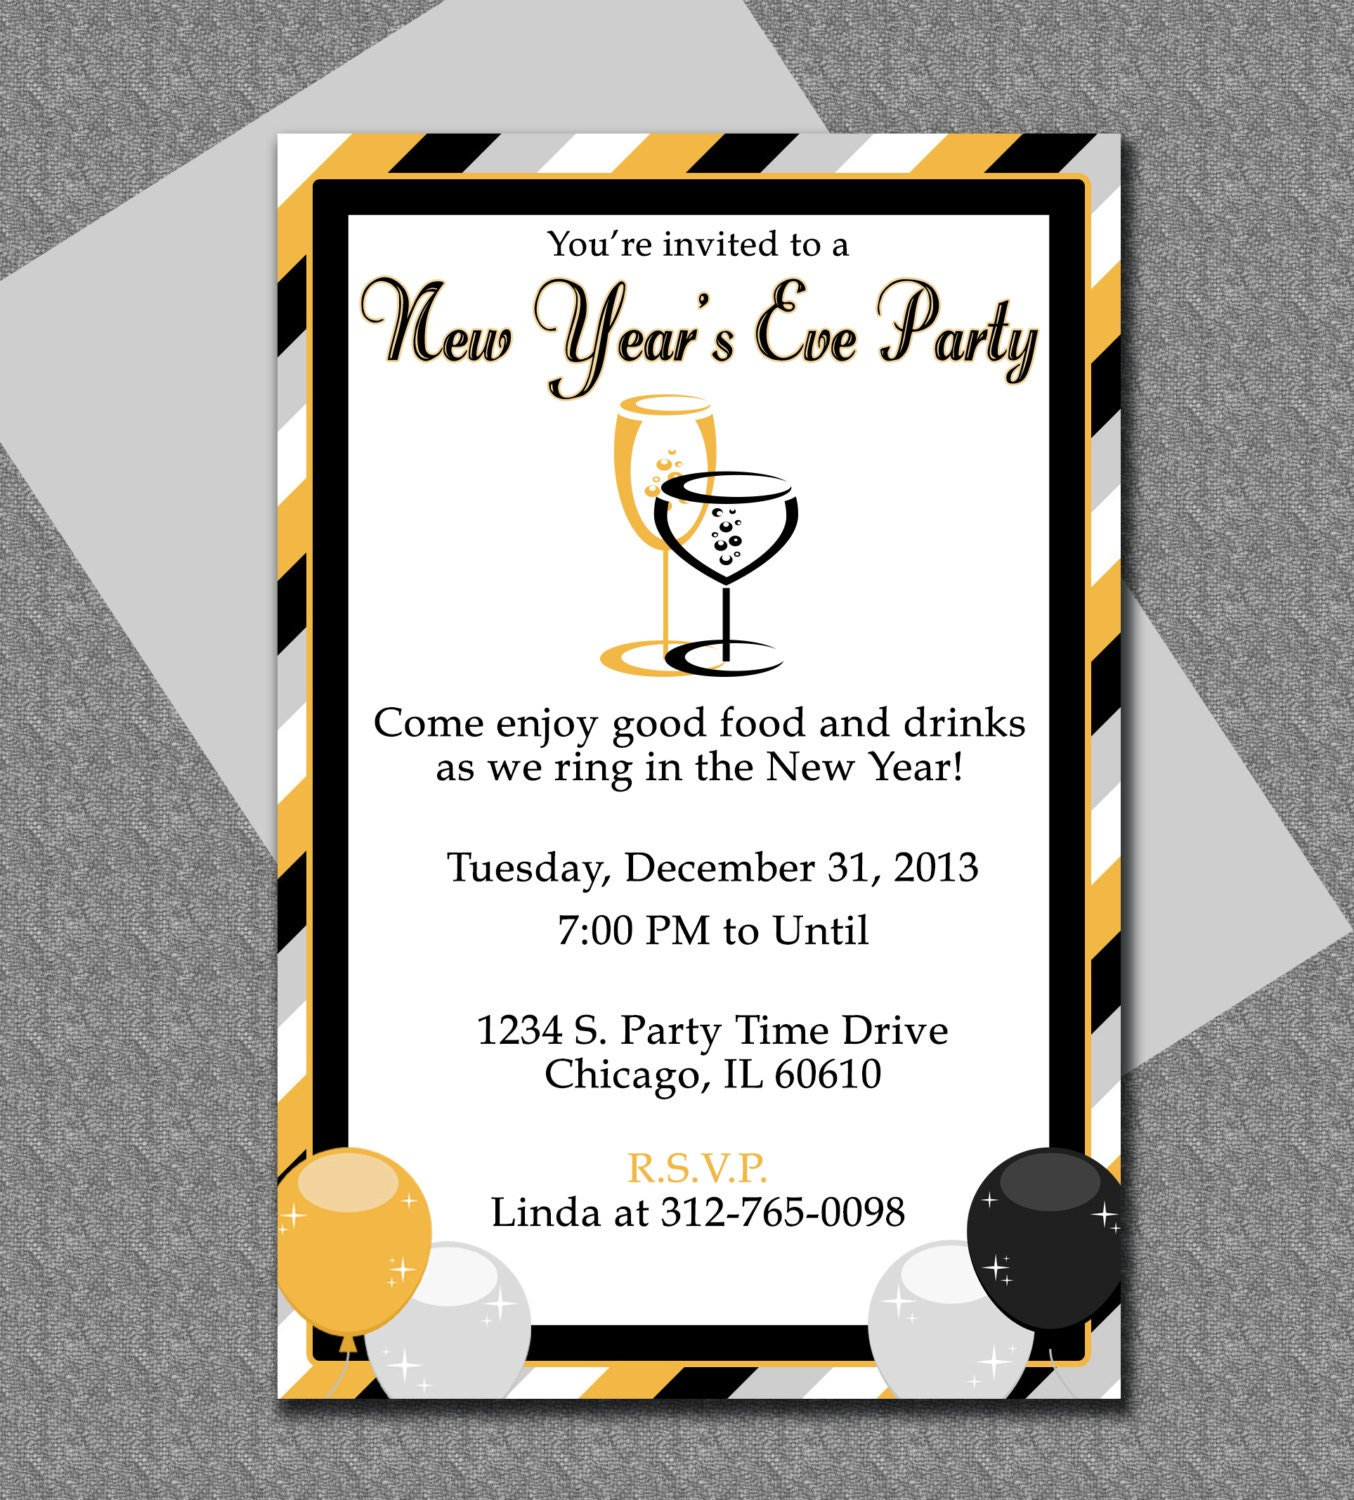 New years eve party invitation editable template for New year invite templates free